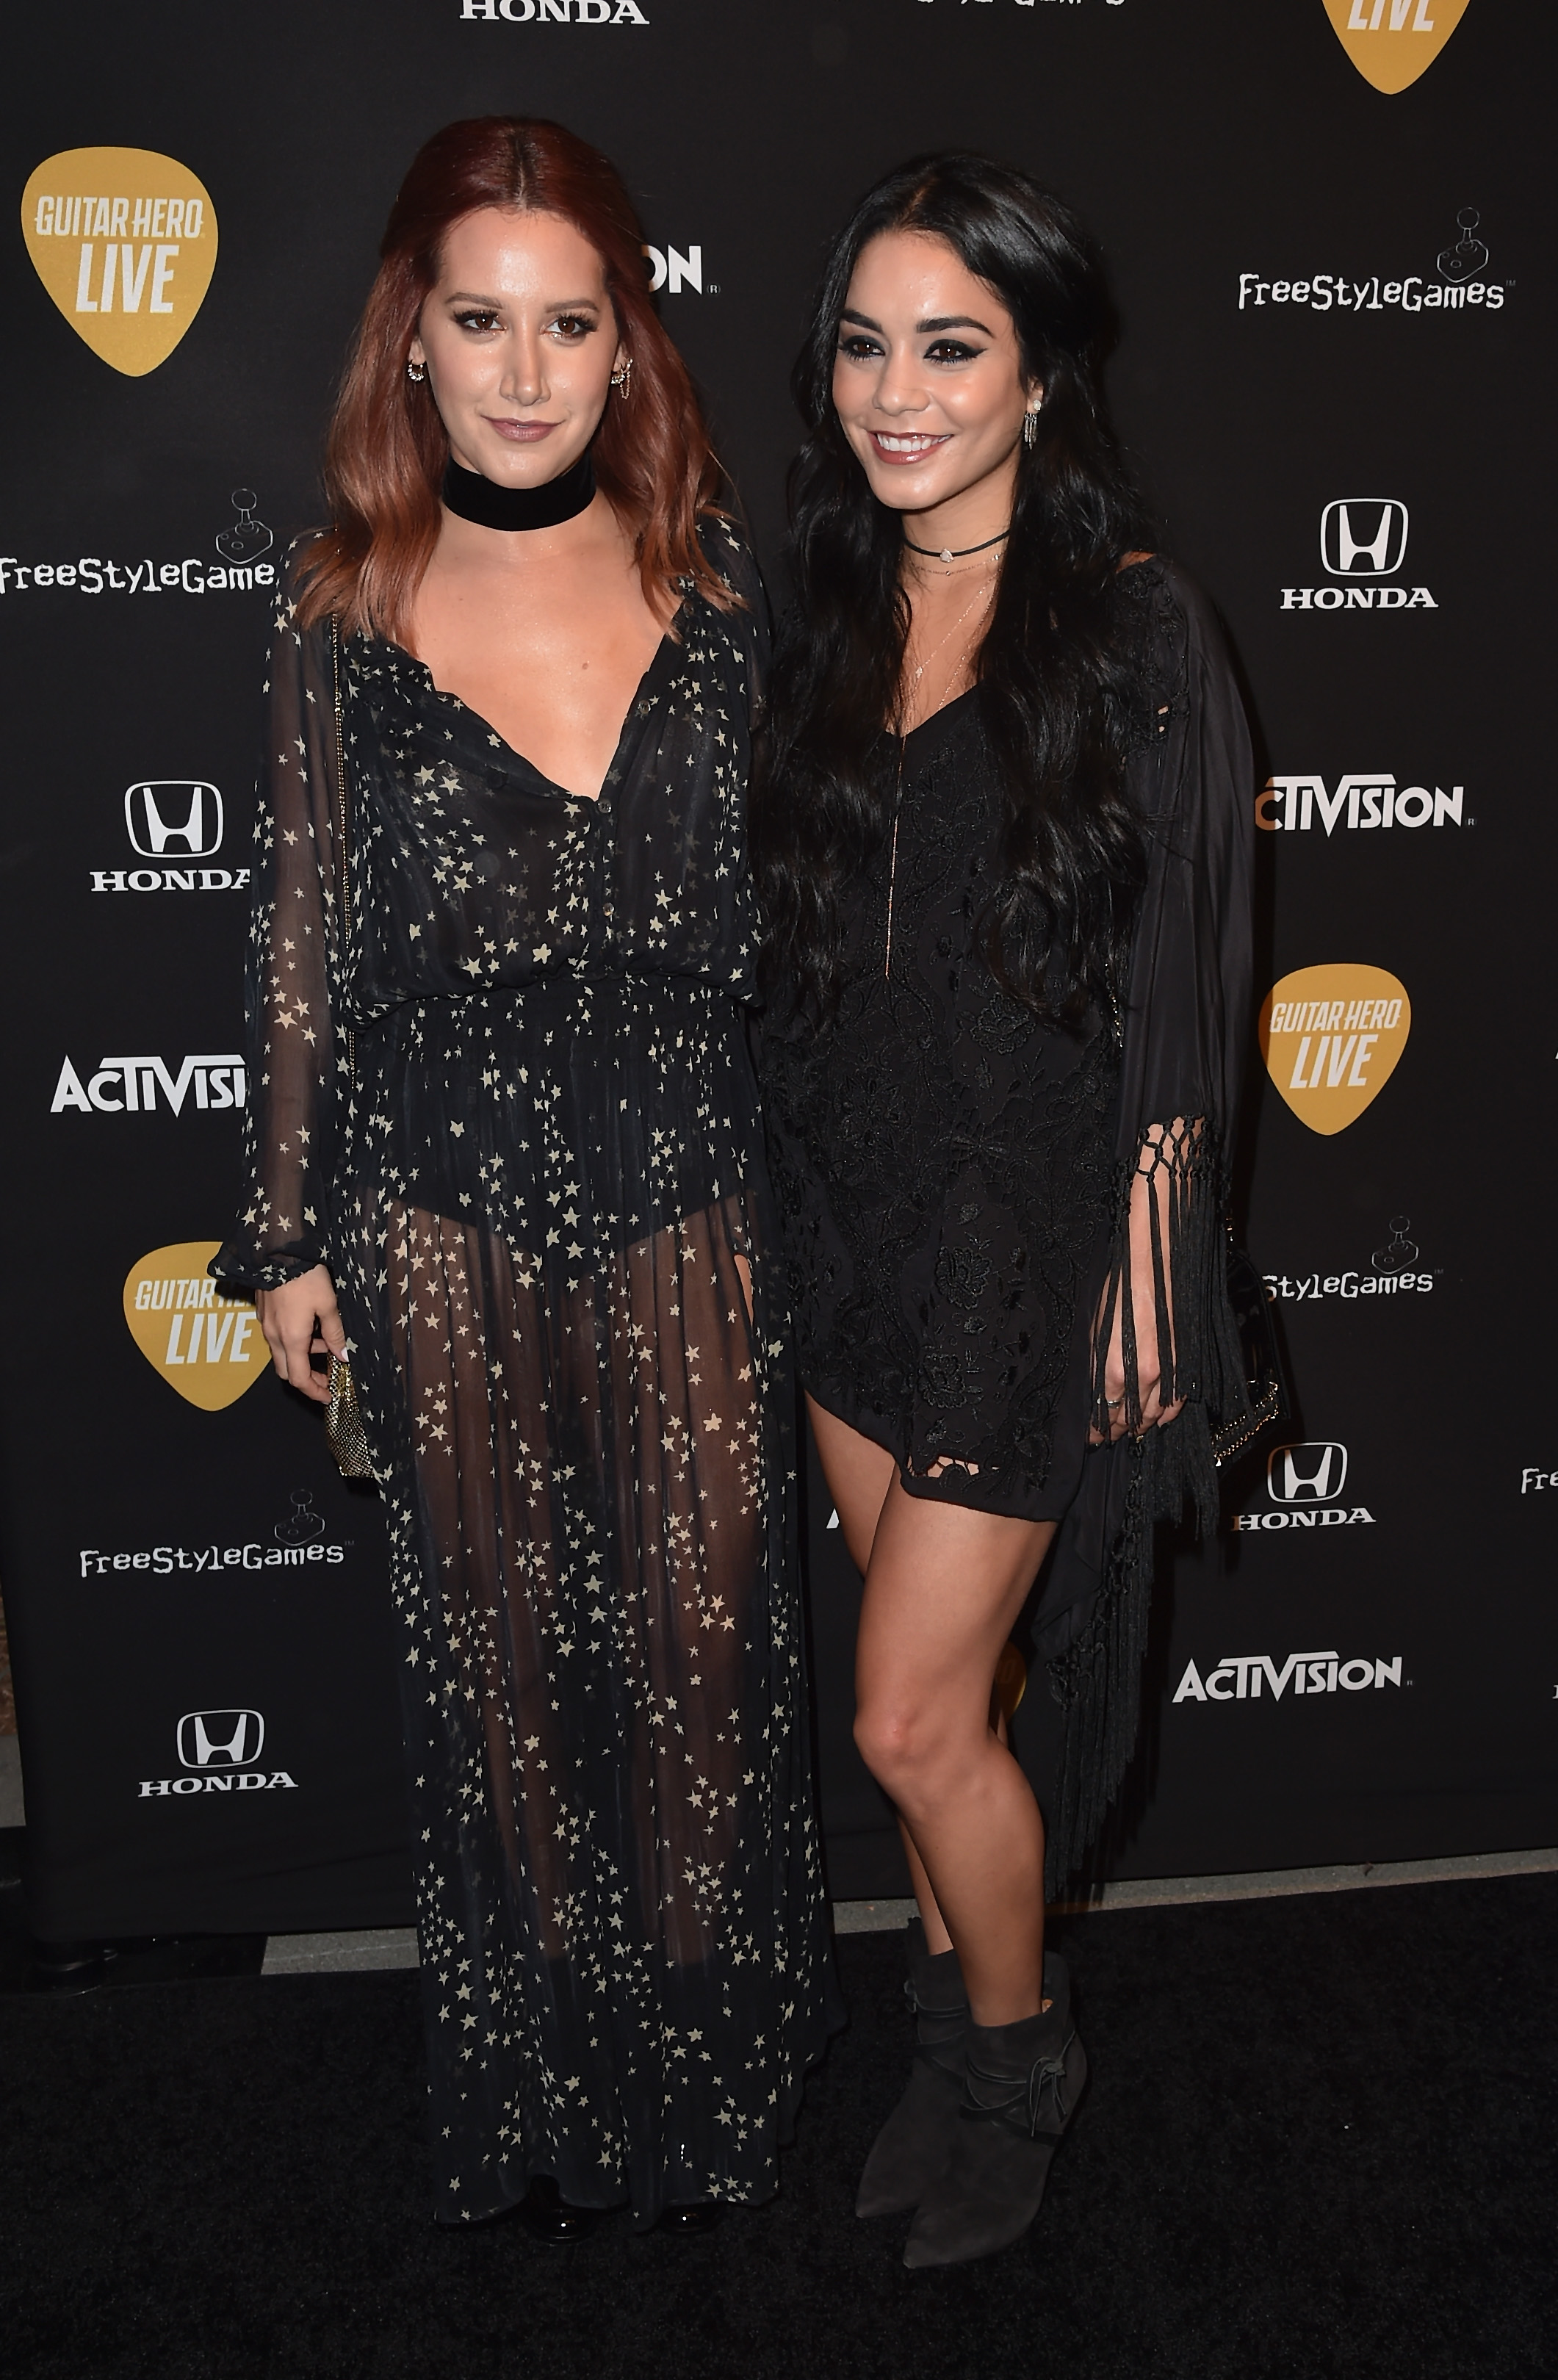 LOS ANGELES, CA - OCTOBER 19: Actors Ashley Tisdale and Vanessa Hudgens attend the Guitar Hero Live Launch Party at YouTube Space LA on October 19, 2015 in Los Angeles, California. (Photo by Alberto E. Rodriguez/Getty Images)